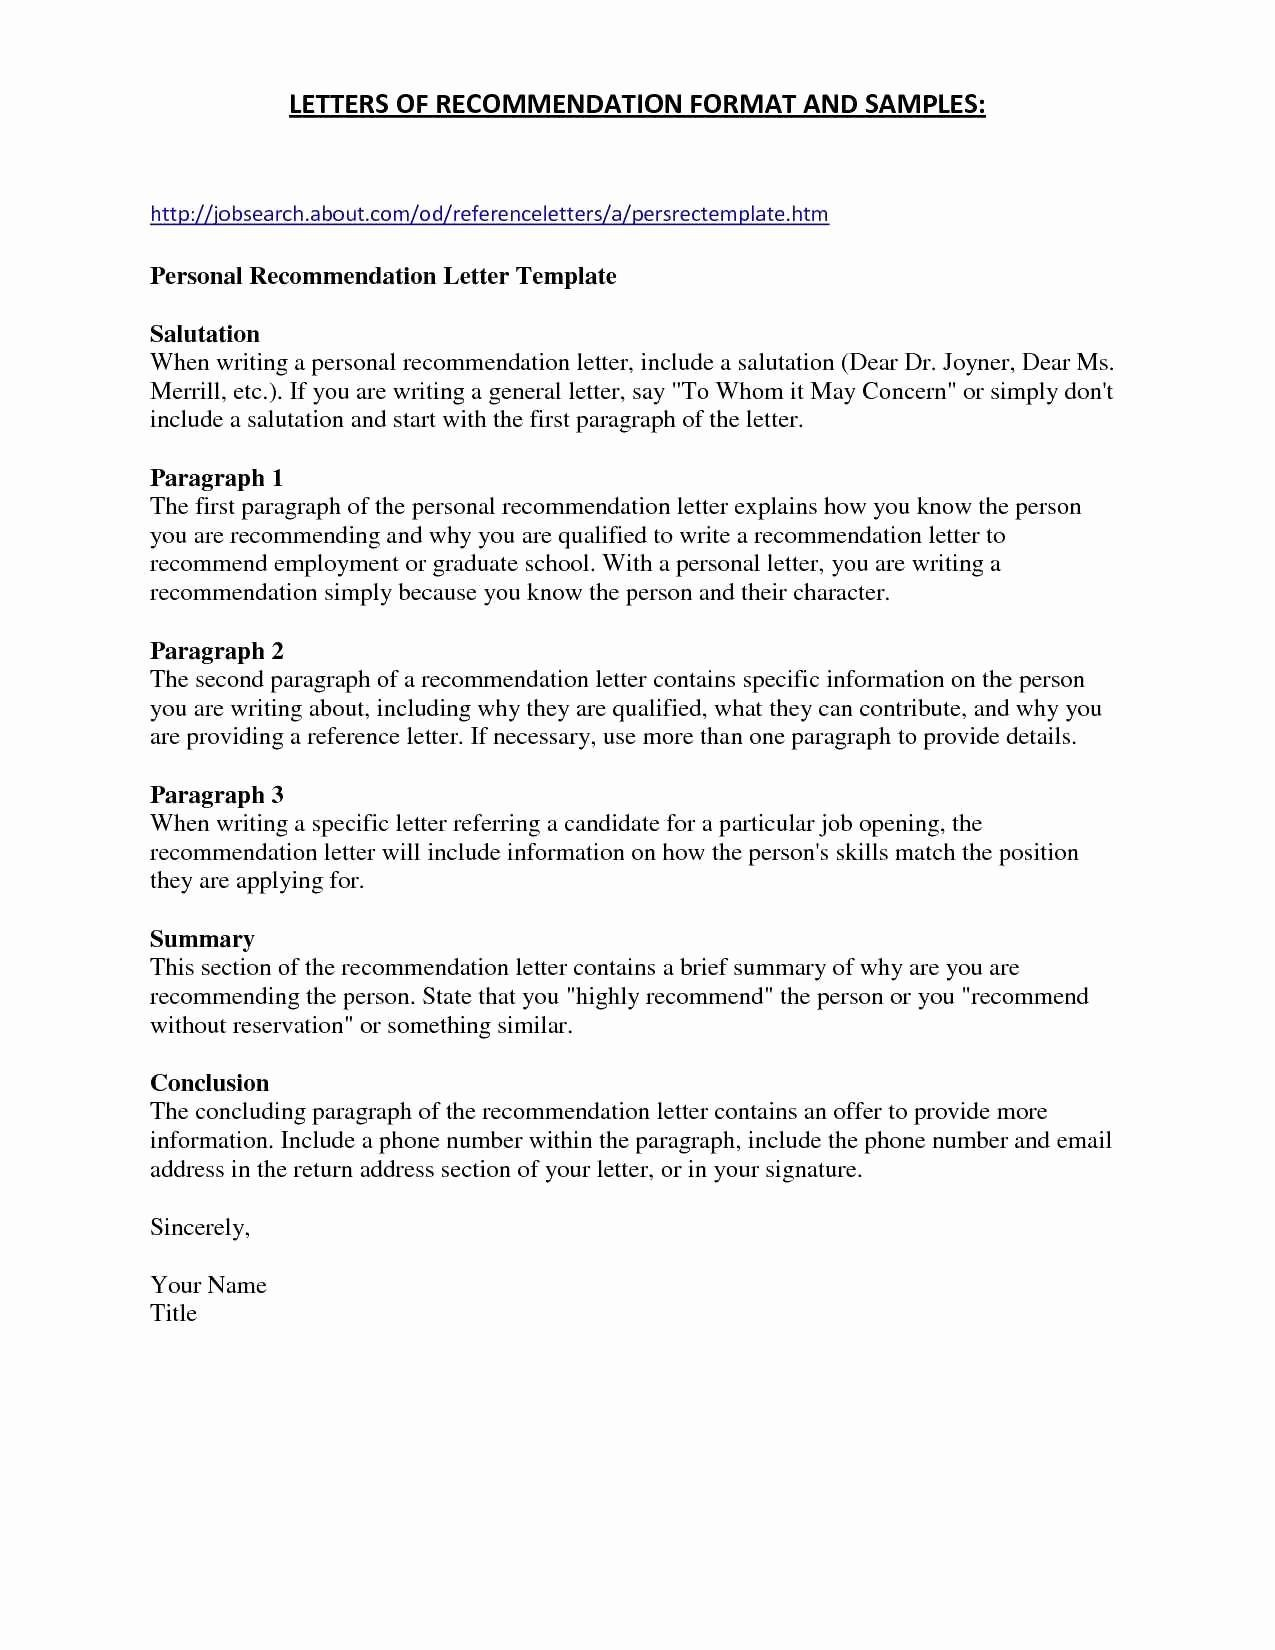 employment verification letter template microsoft example-Cover Letter to Consultant for Job Best New Job Fer Letter Template Us Copy Od Consultant 18-j